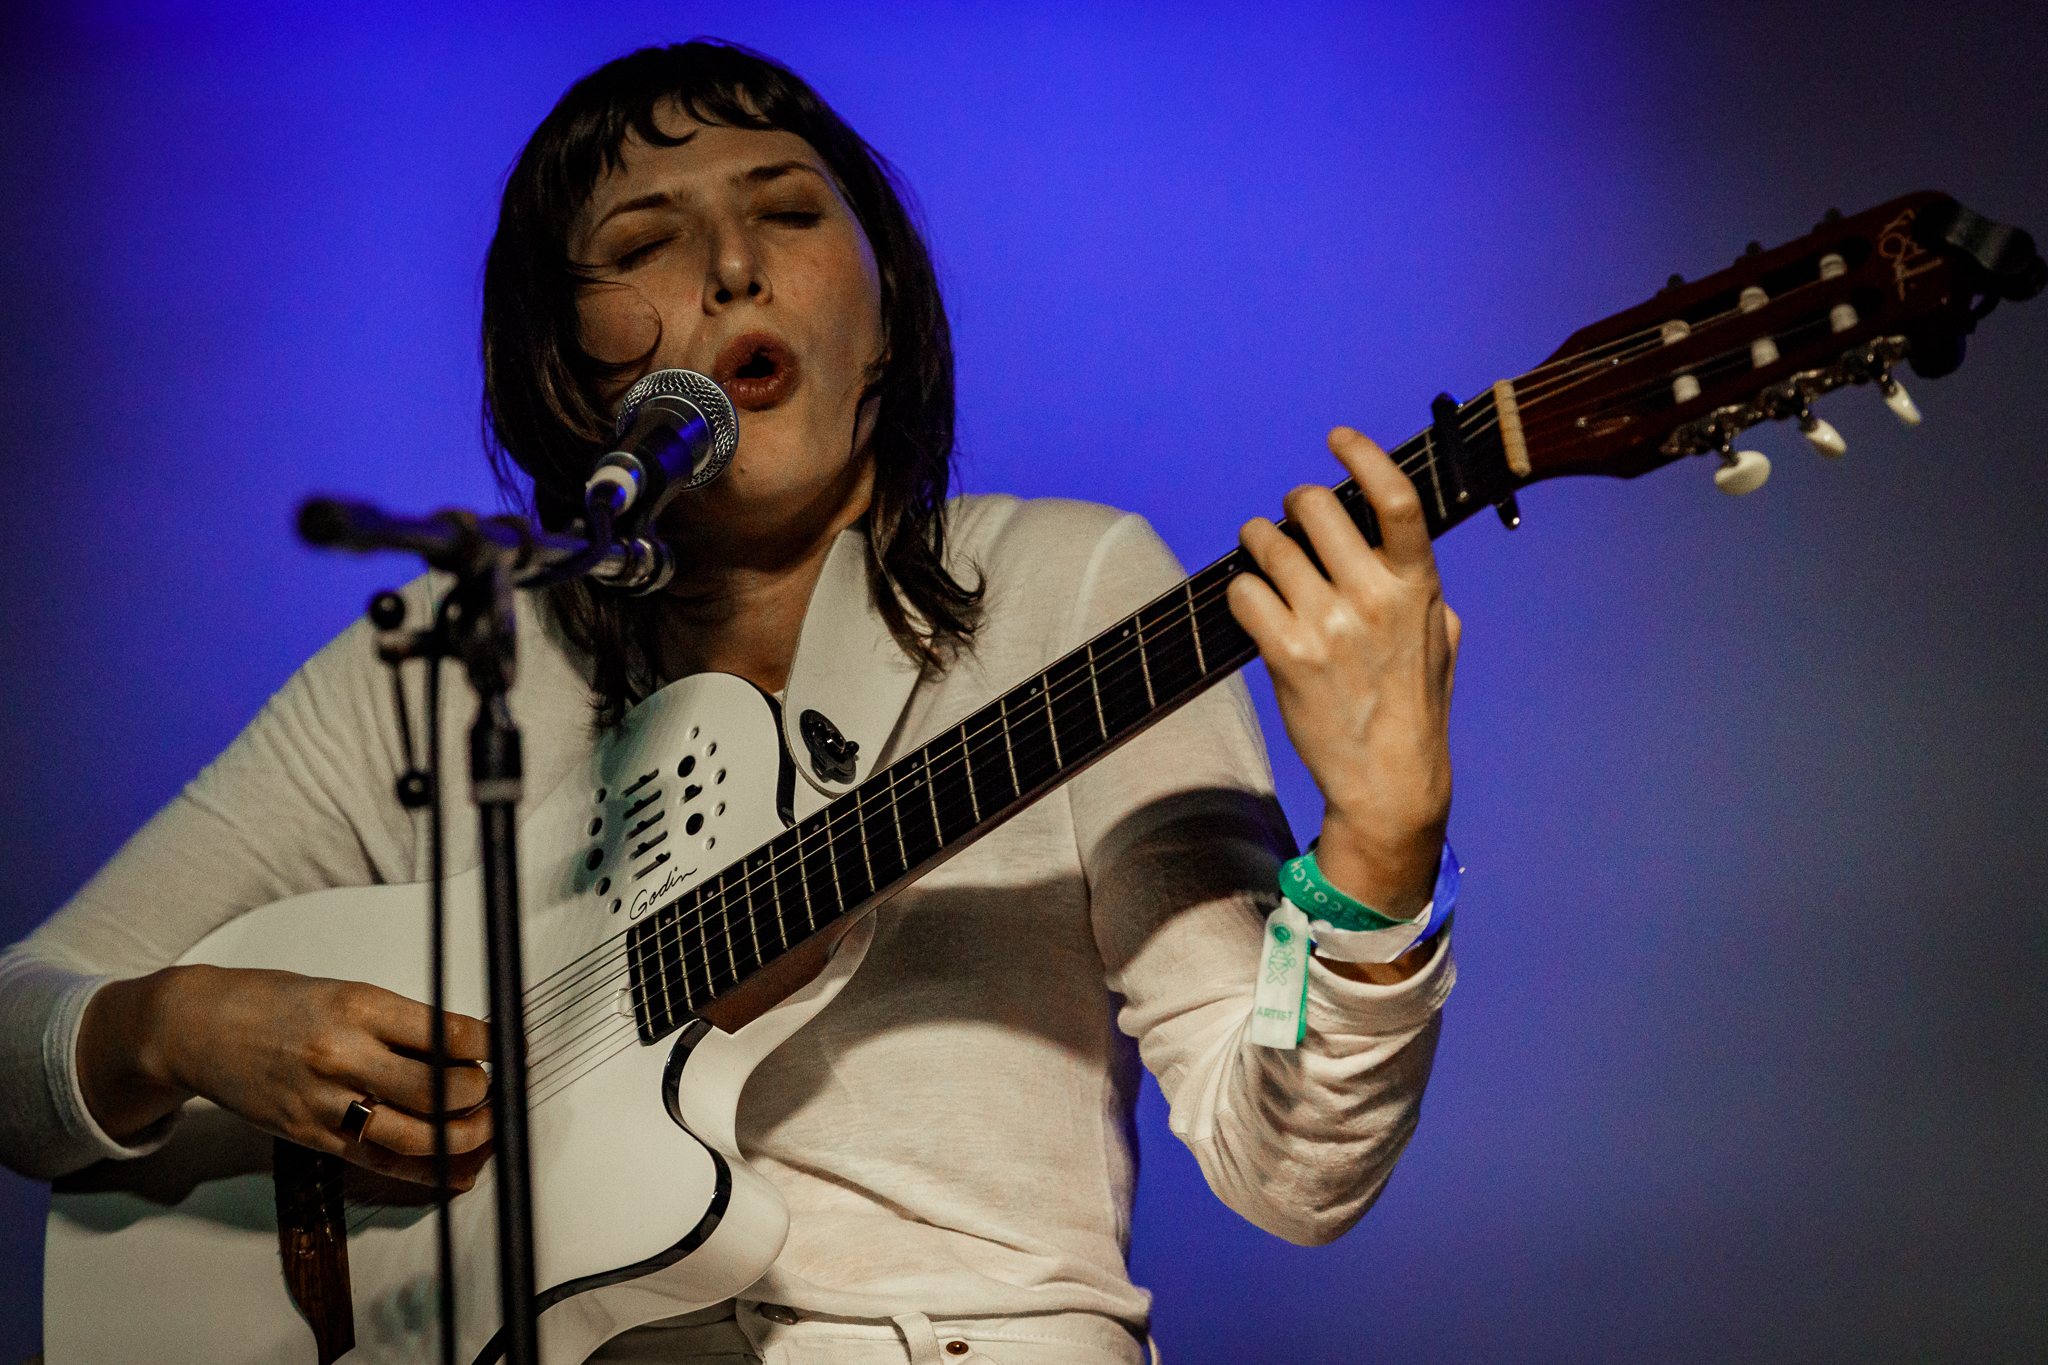 Aldous Harding performing at Hopscotch Music Festival 2017 in Raleigh, NC - 9/9/2017 (photo by Matt Condon / @arcane93)